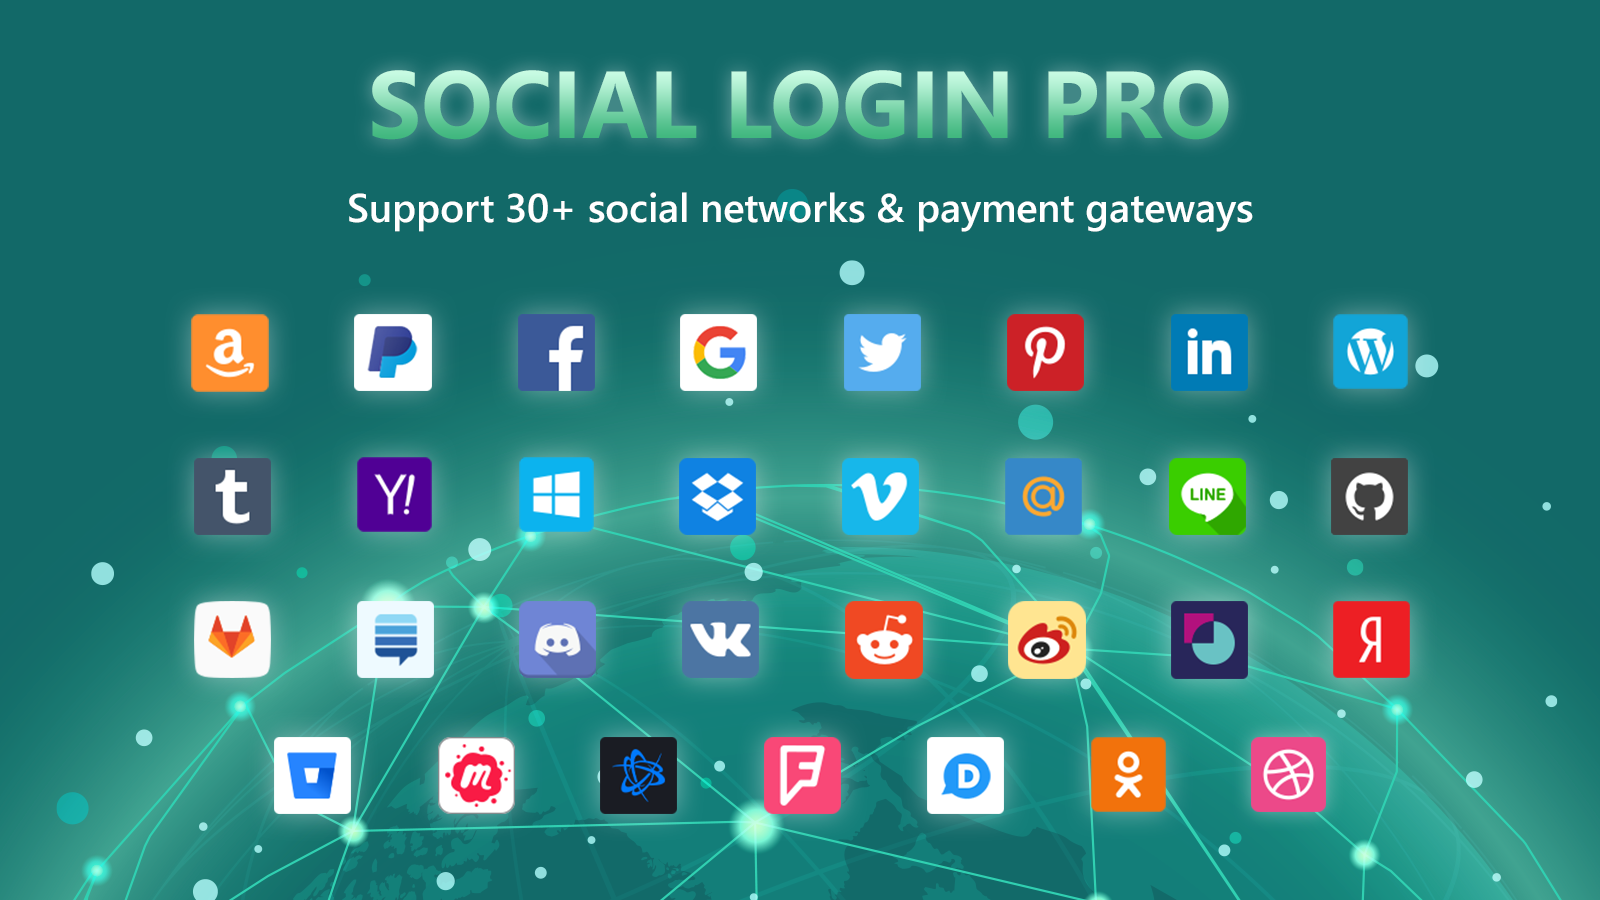 Support 30+ social networks